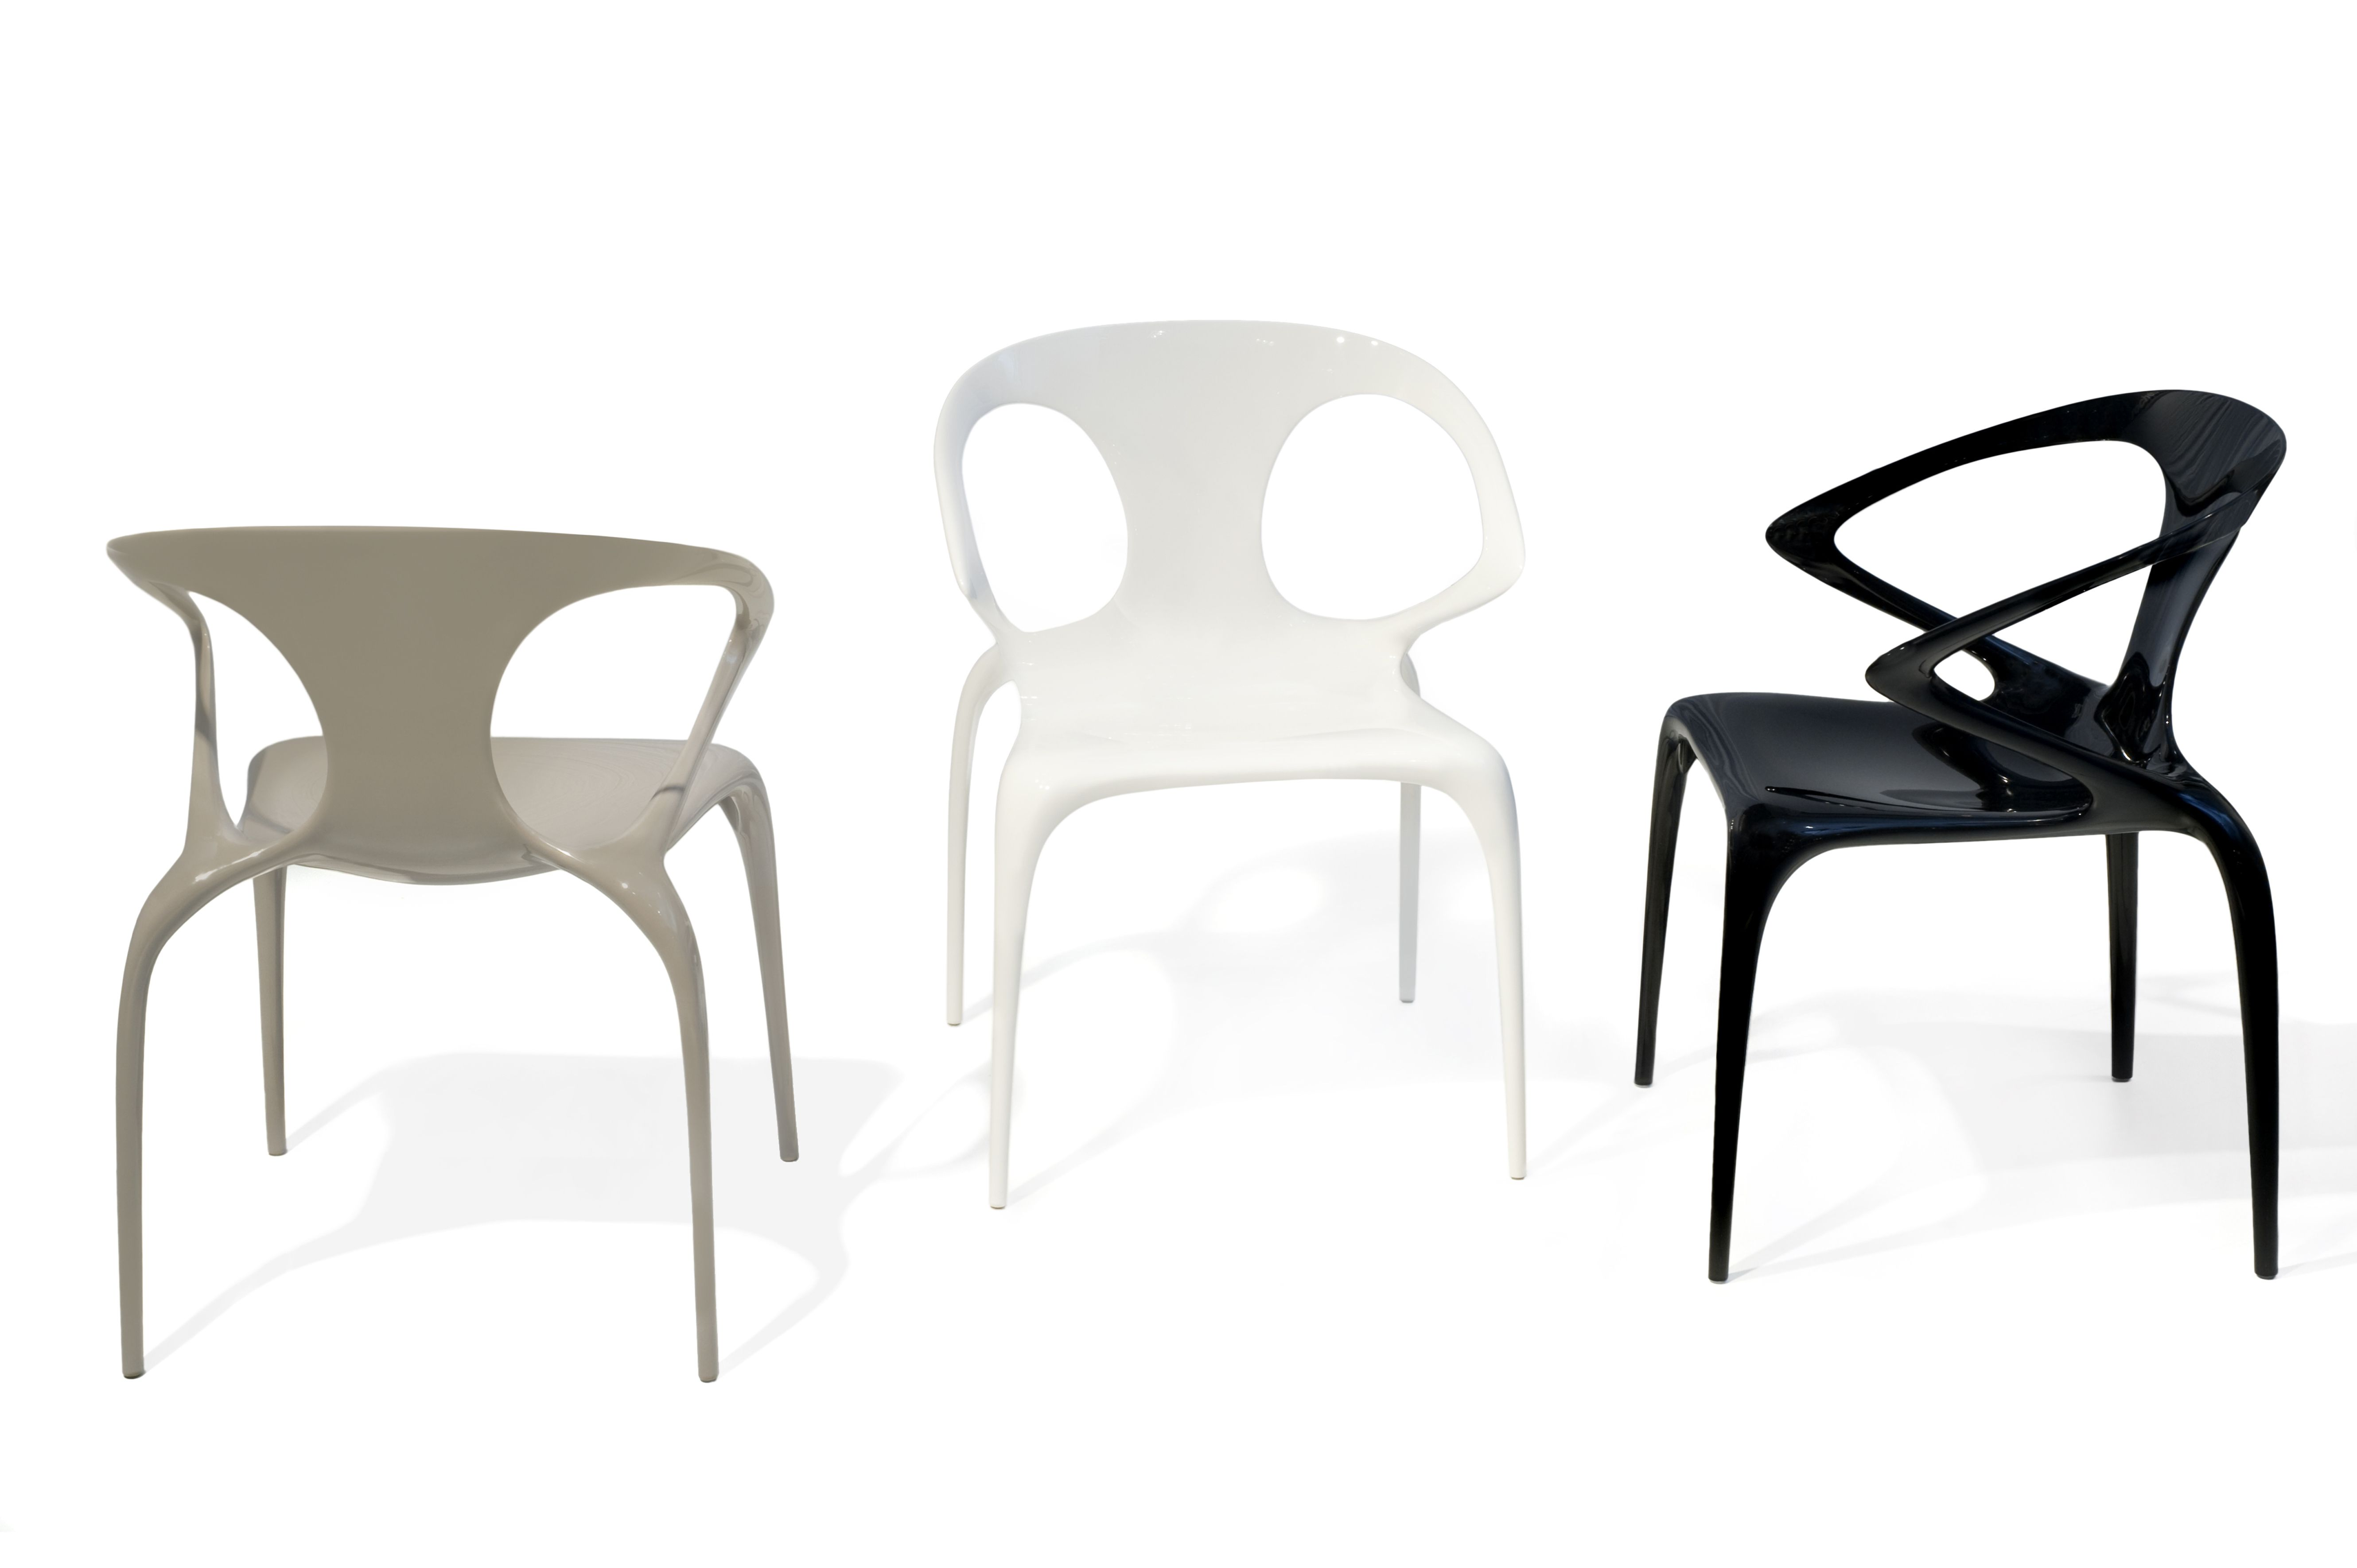 Roche Bobois Ava Chair Designed By Song Wen Zhong Manufactured In Europe Rochebobois Frenchartdevivre Plastic Chair Design Chair Love Chair